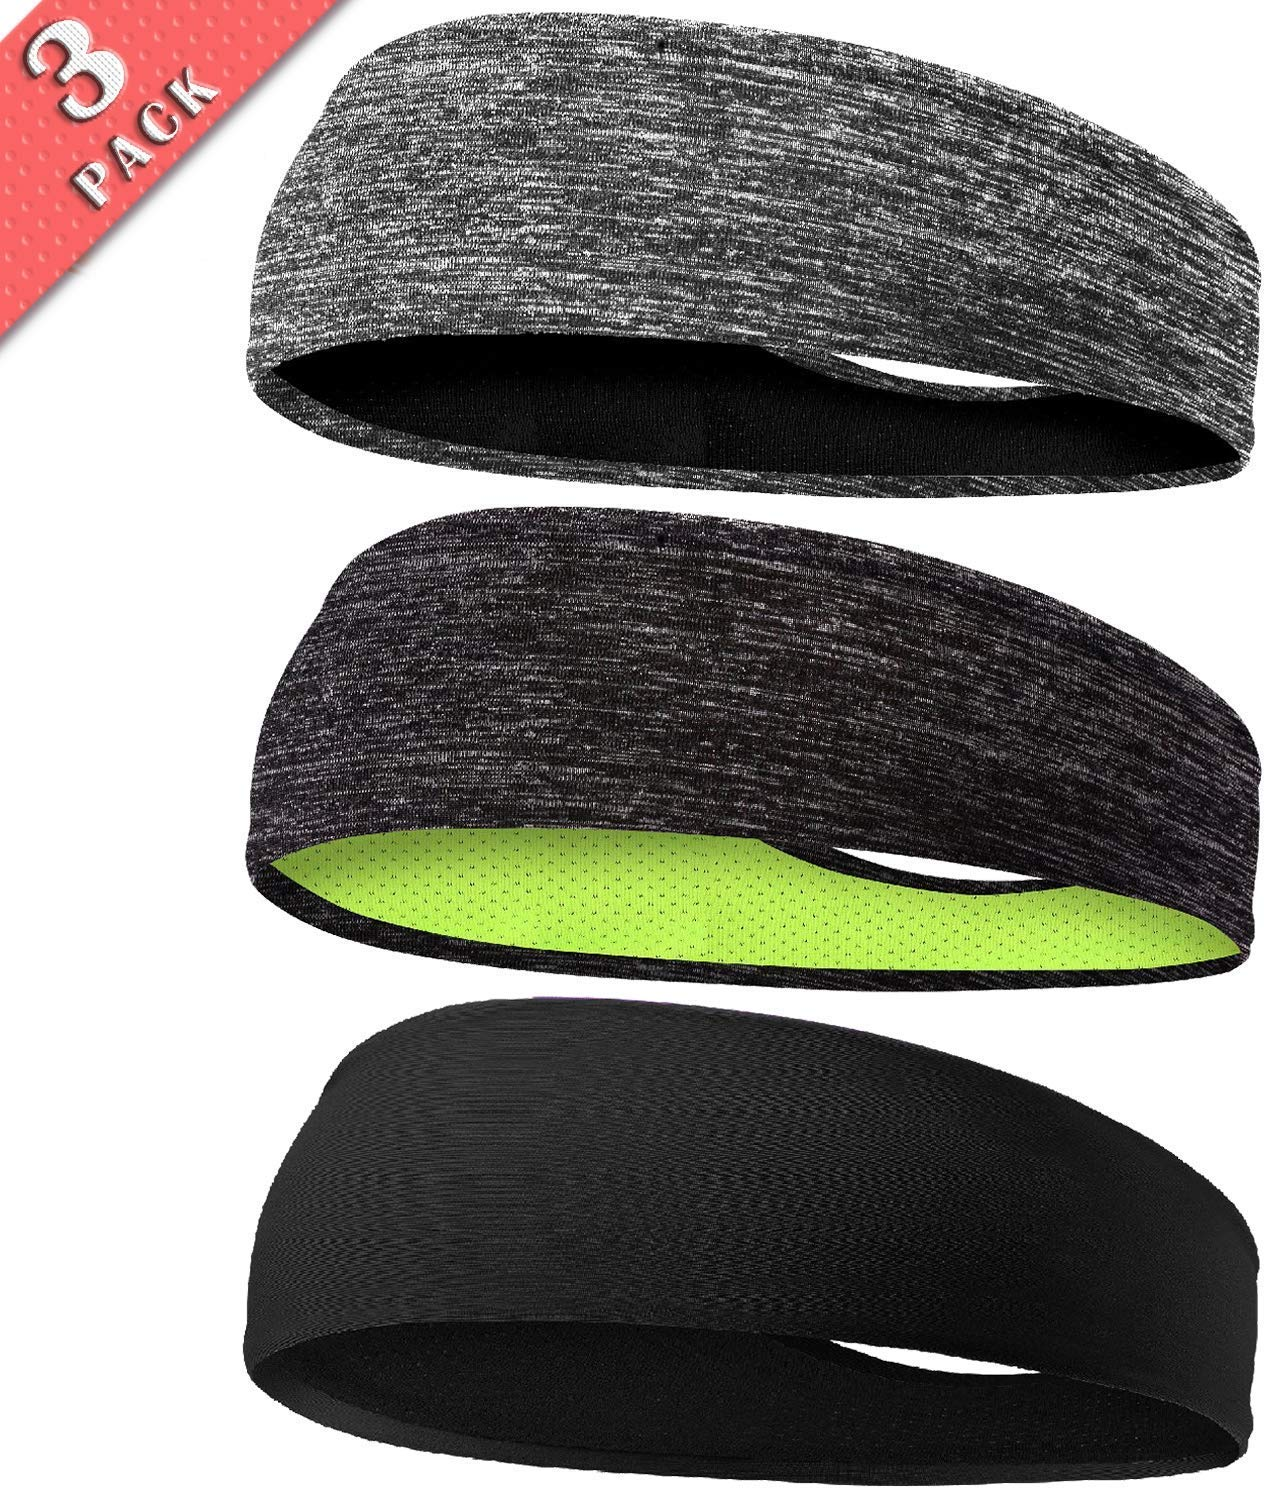 Braylin Men's Headbands, 3 Pack Sweat Workout Headbands for Men, Sport Cooling Headbands for Running Crossfit Fitness Yoga Cycling Hiking, Elastic Sweat Wicking Non Slip